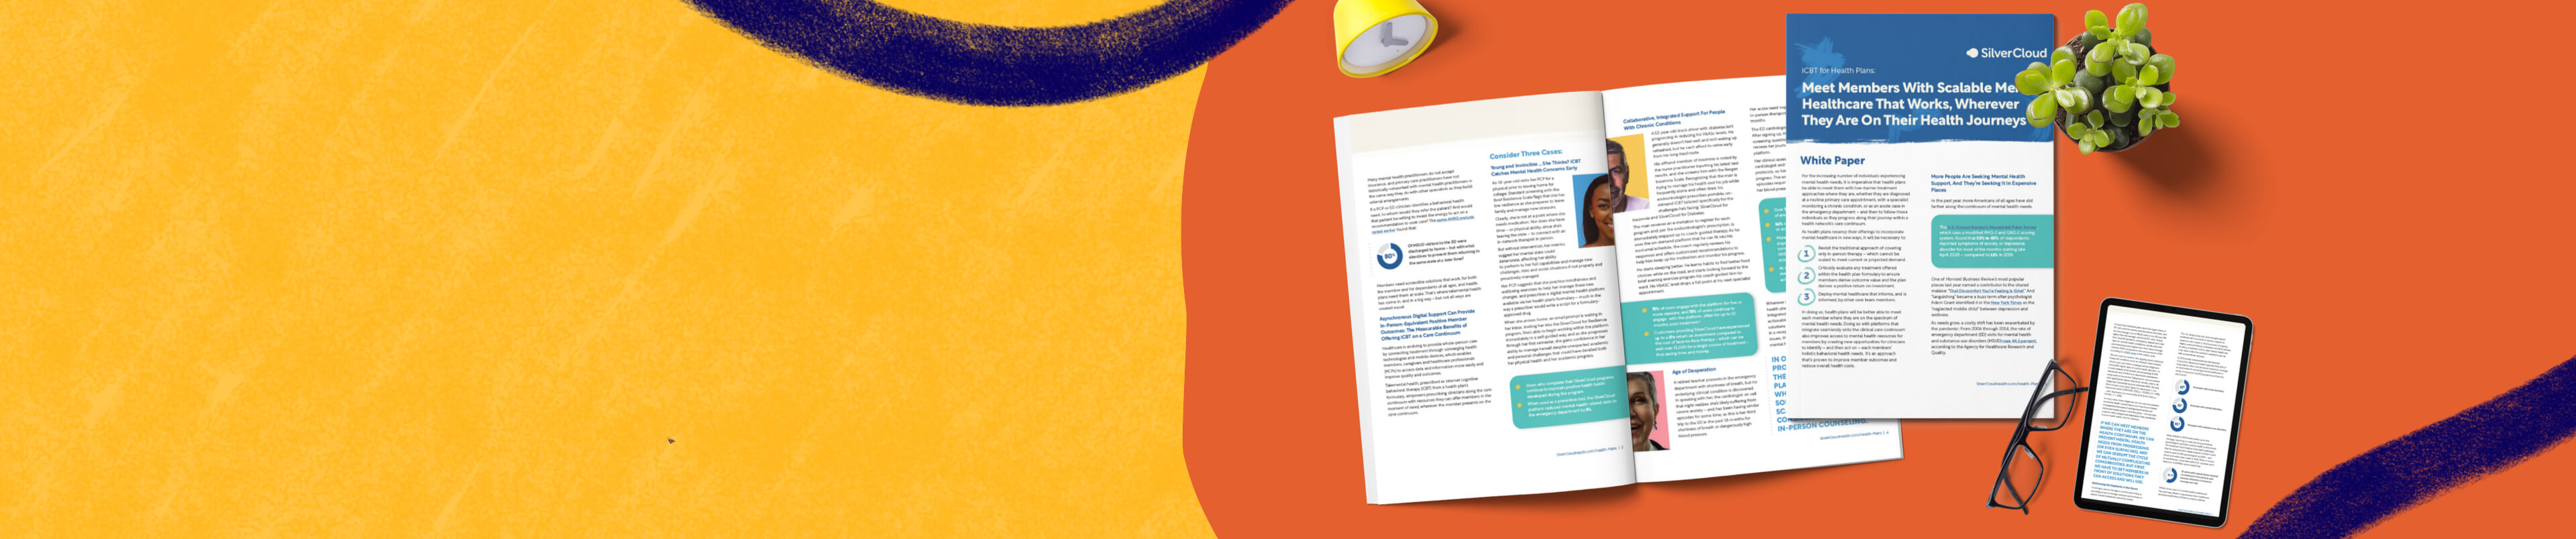 SilverCloud_2021_Website_Headers_Phase_2-health-plans-white_paper-1